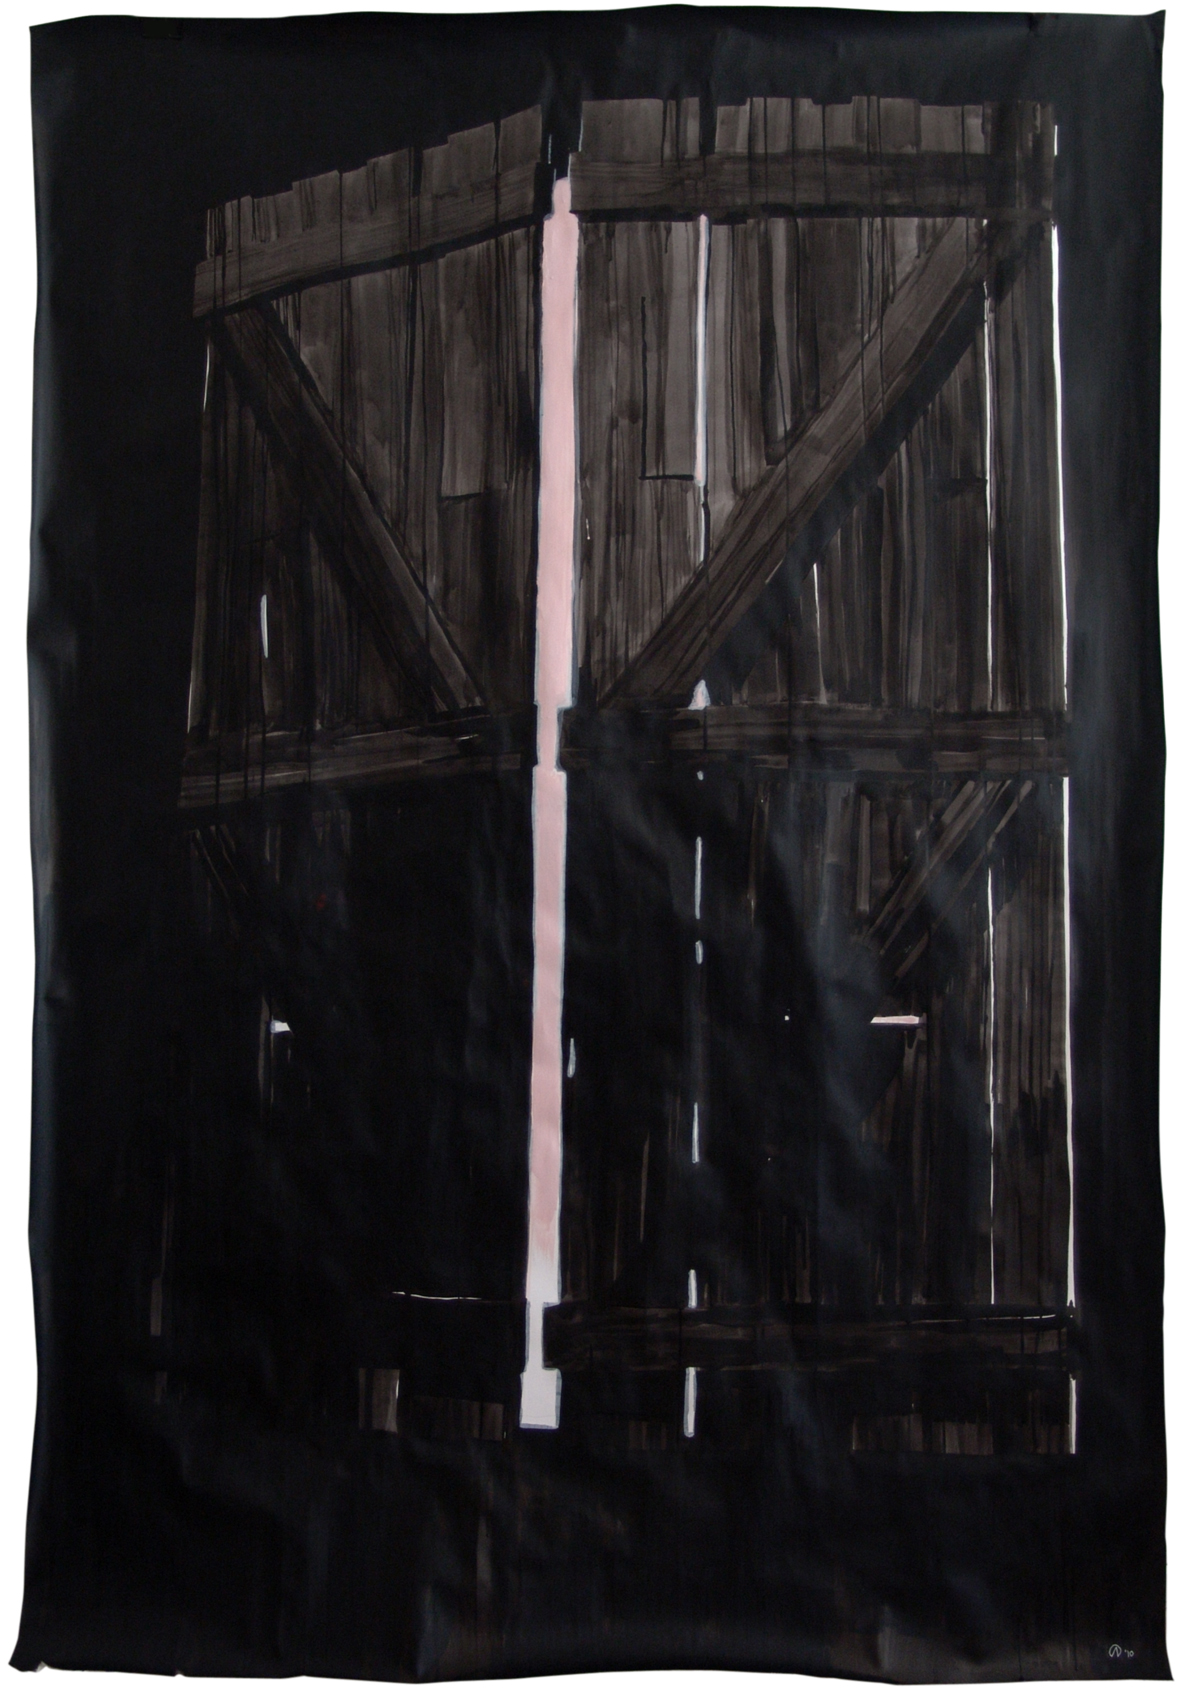 GATE, Indian ink & acrylic paint on paper, 2m x 1.50m, 2010, Alexandra Crouwers